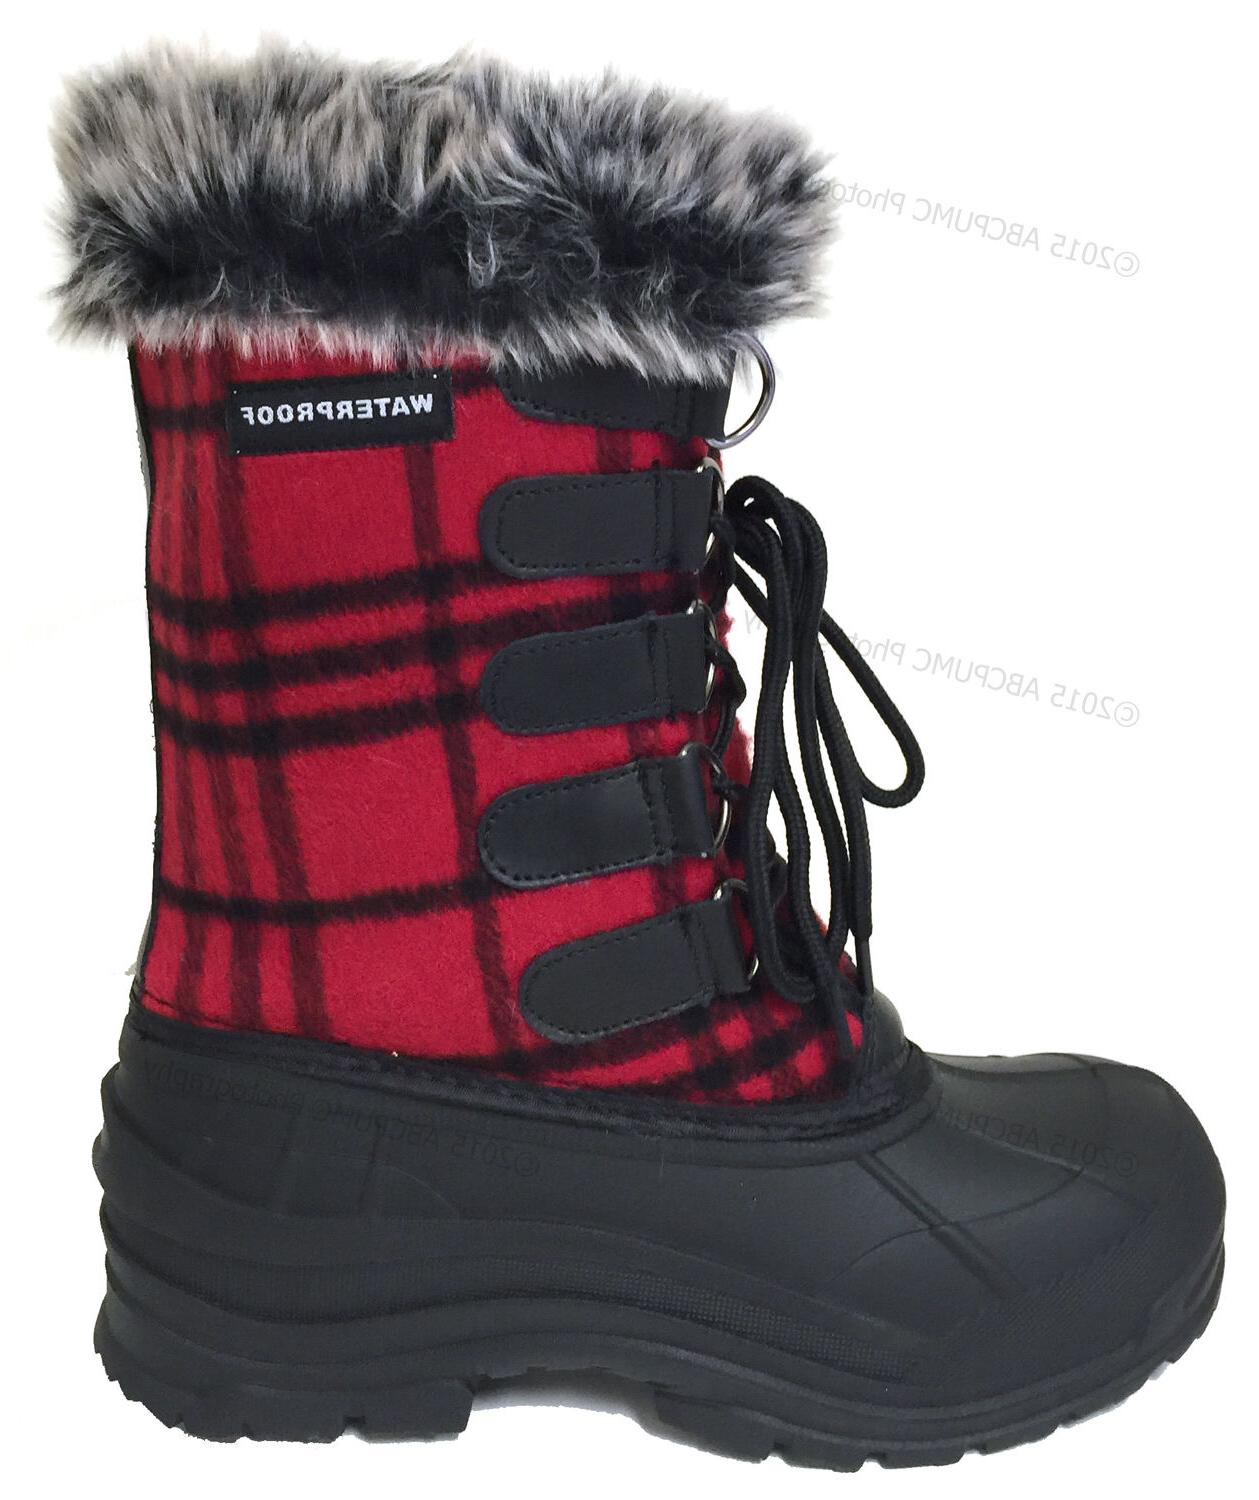 New Women's Flannel Plaid Fur Warm Insulated